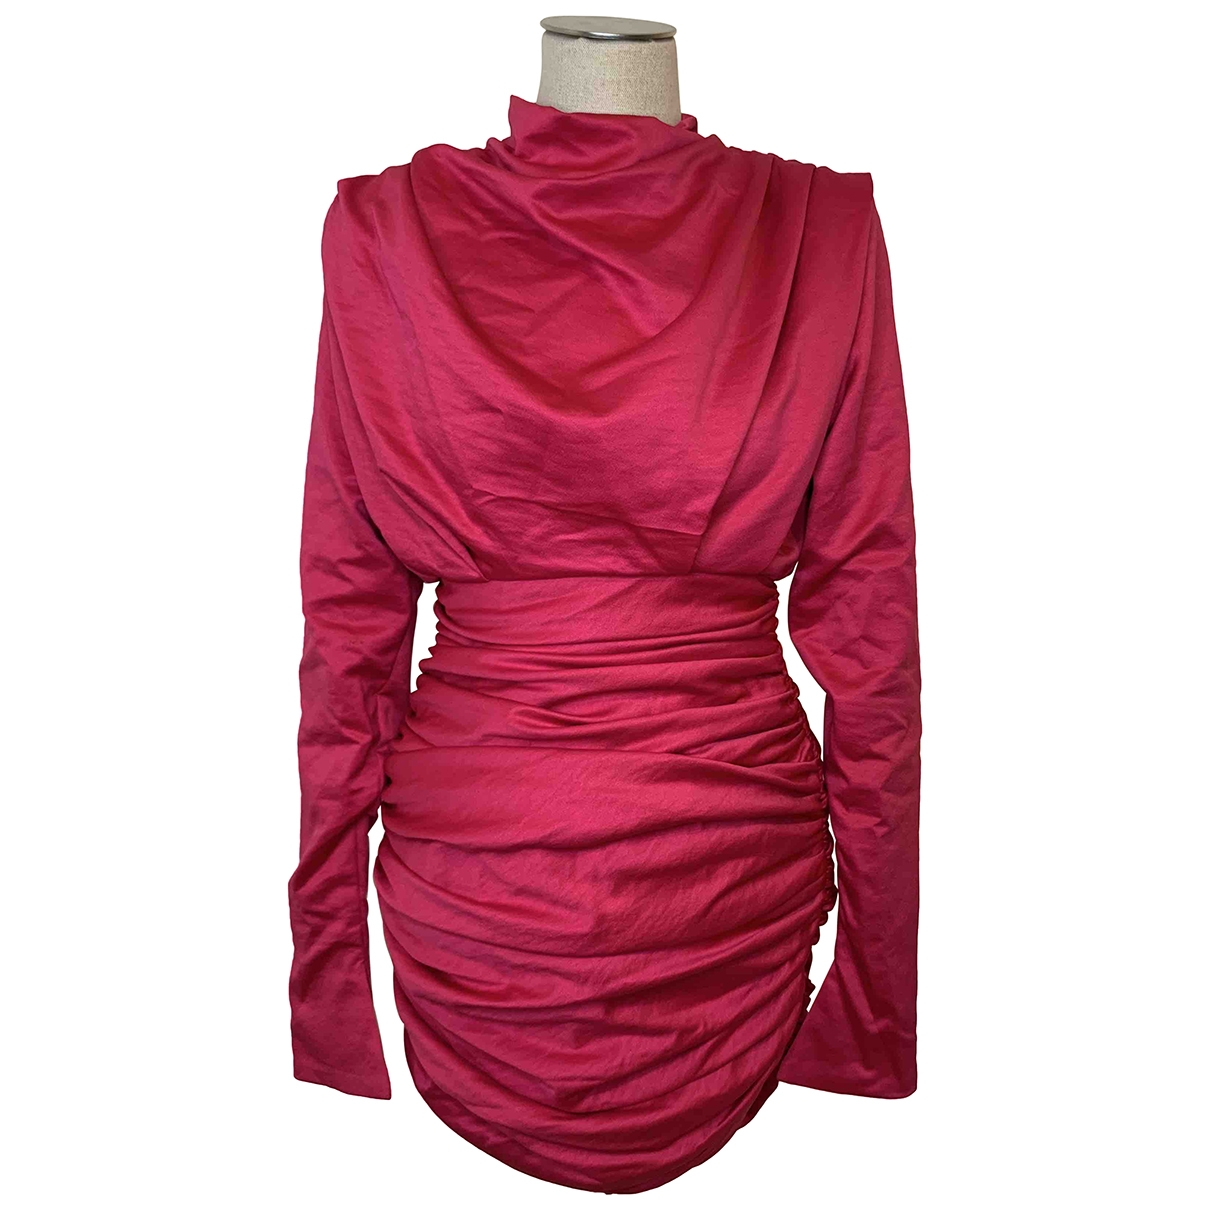 House Of Cb \N Kleid in  Rosa Polyester